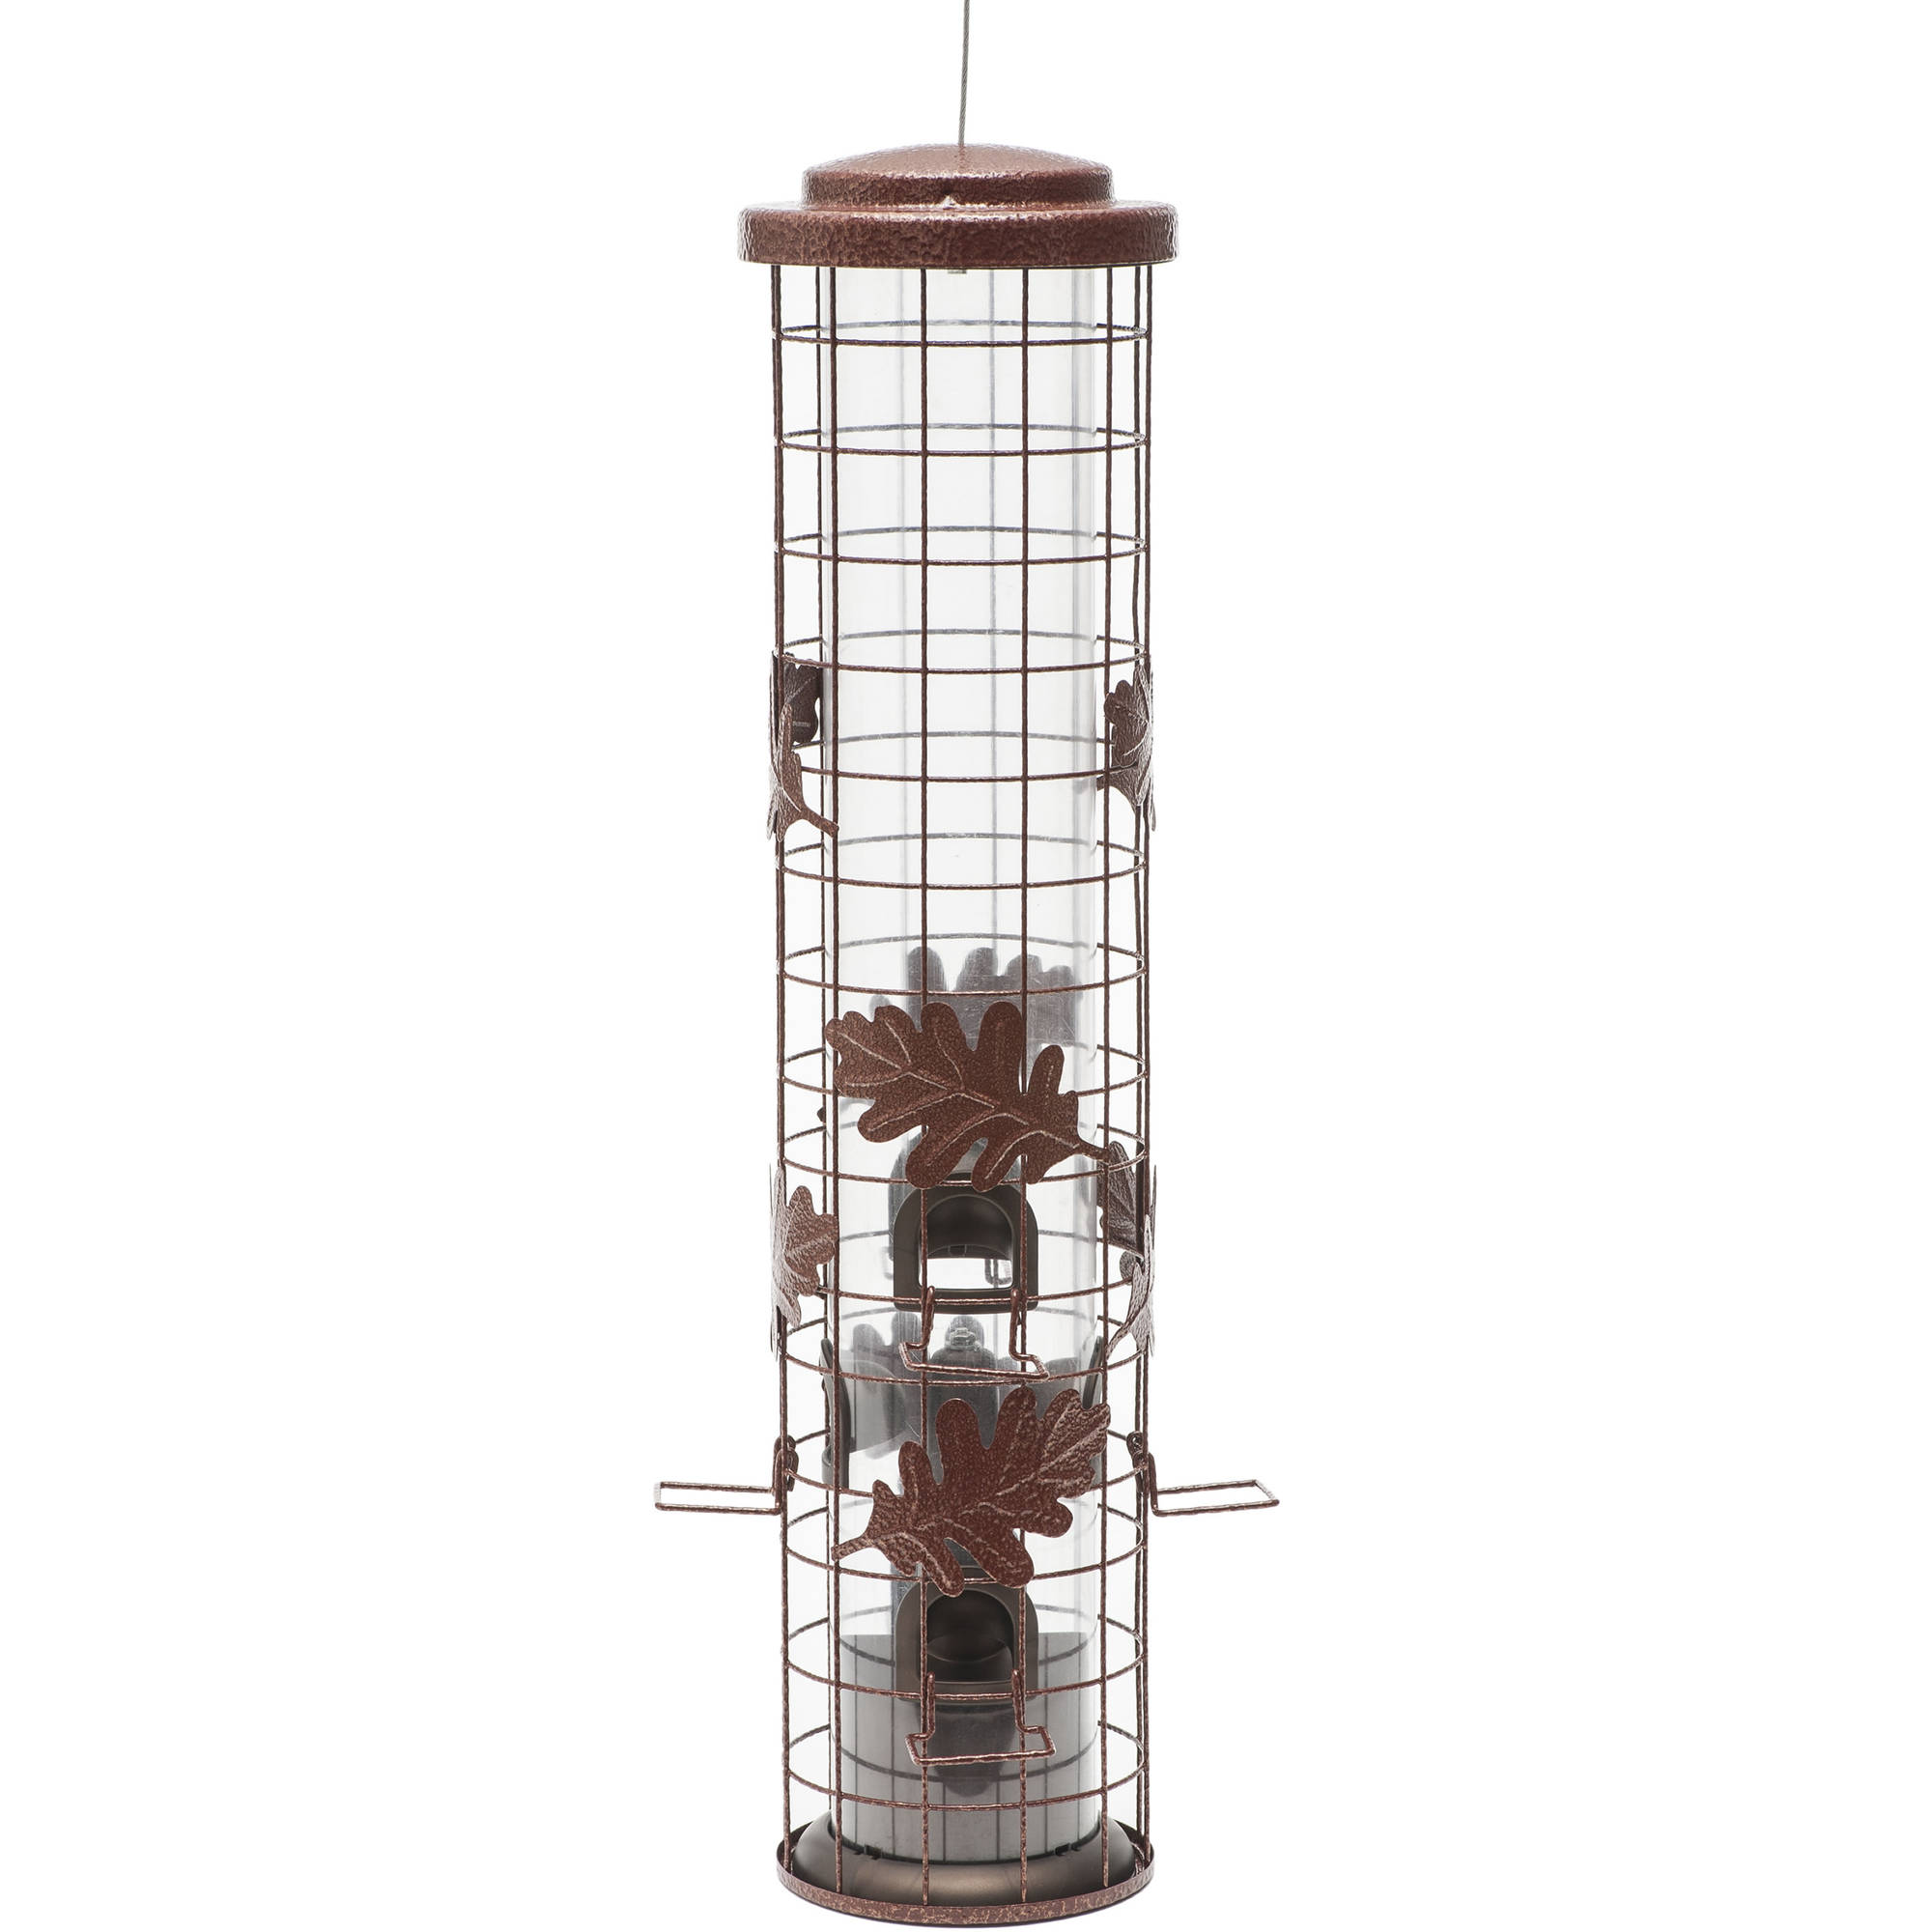 Perky-Pet Squirrel-Be-Gone Cylinder Wild Birdfeeder by WOODSTREAM CORPORATION